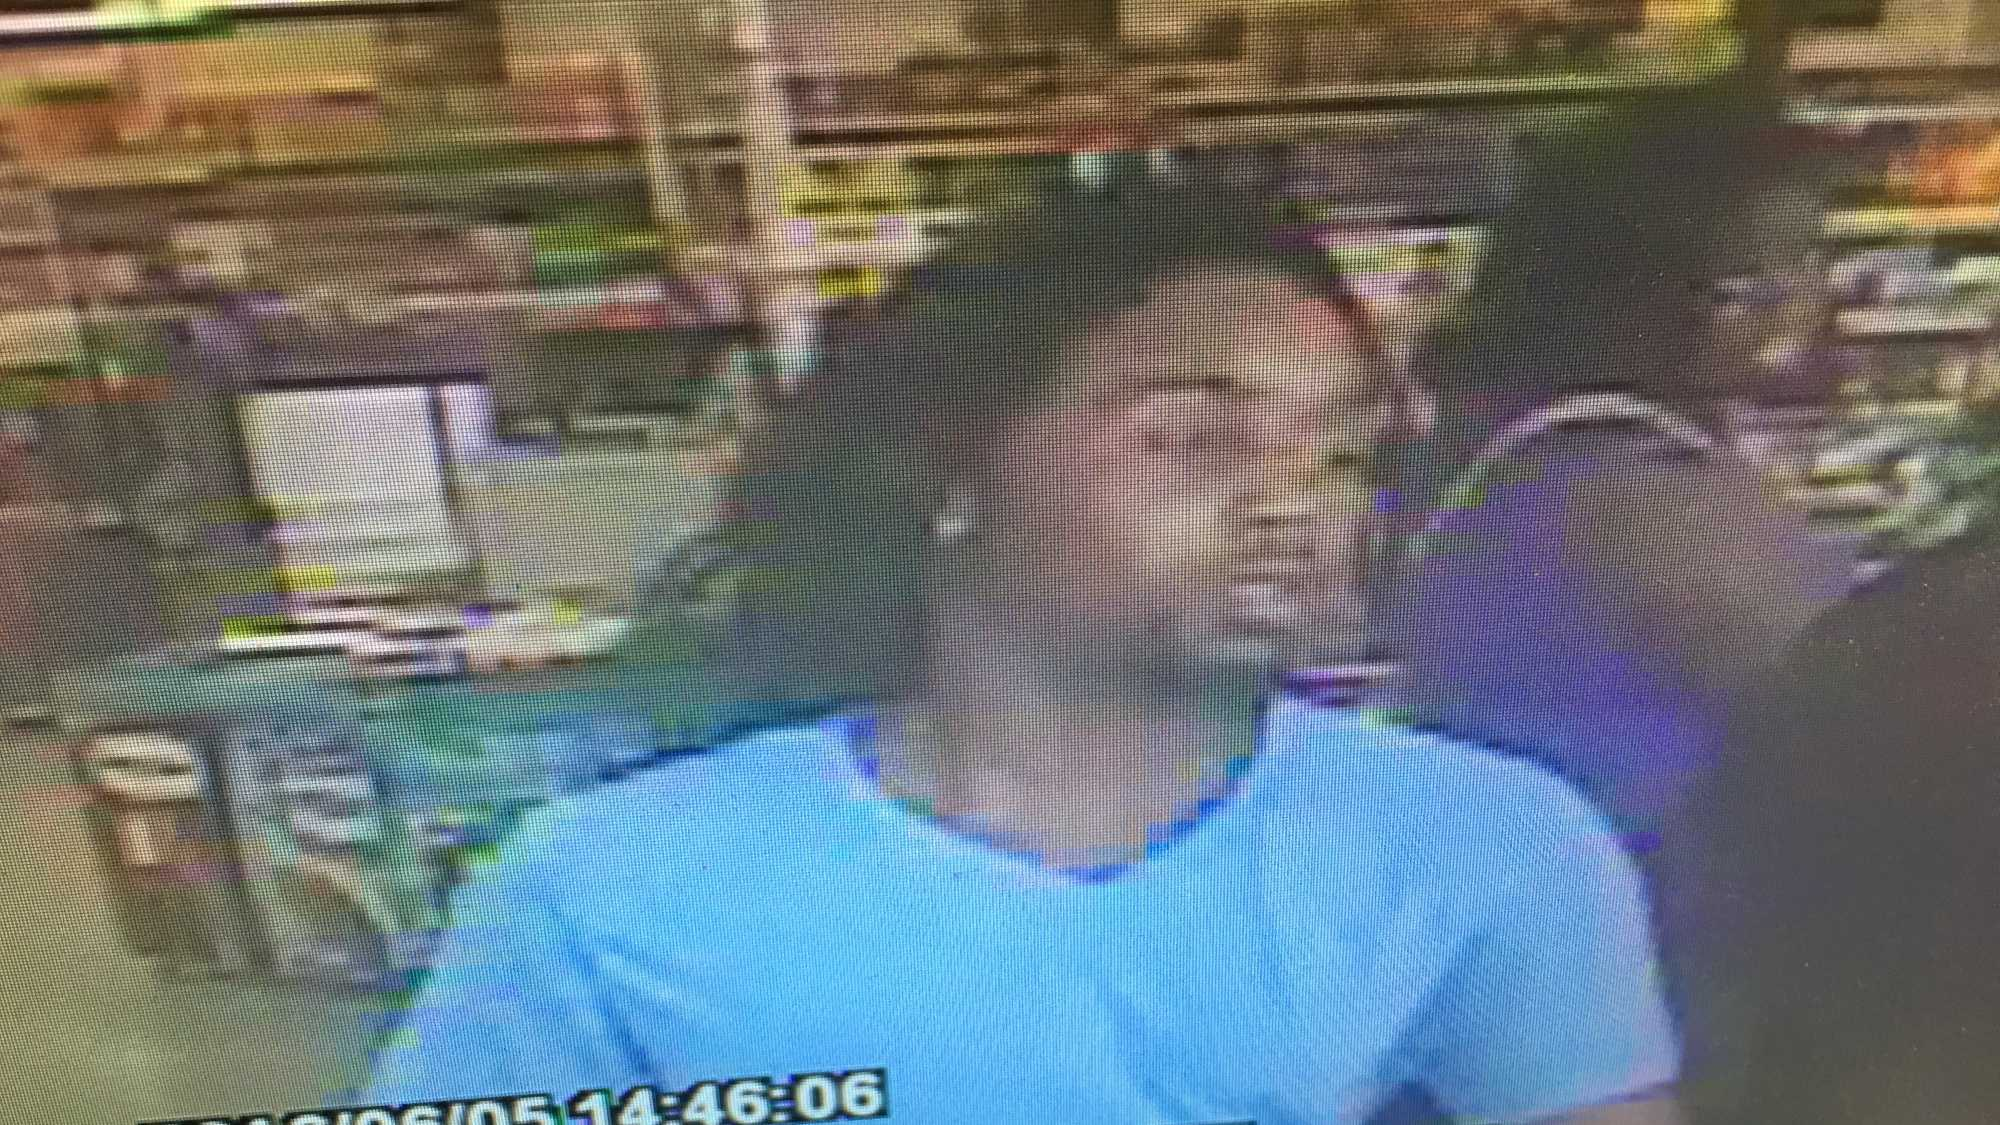 Birmingham police are asking for the public's assistance in identifying a man who robbed two stores Sunday afternoon.